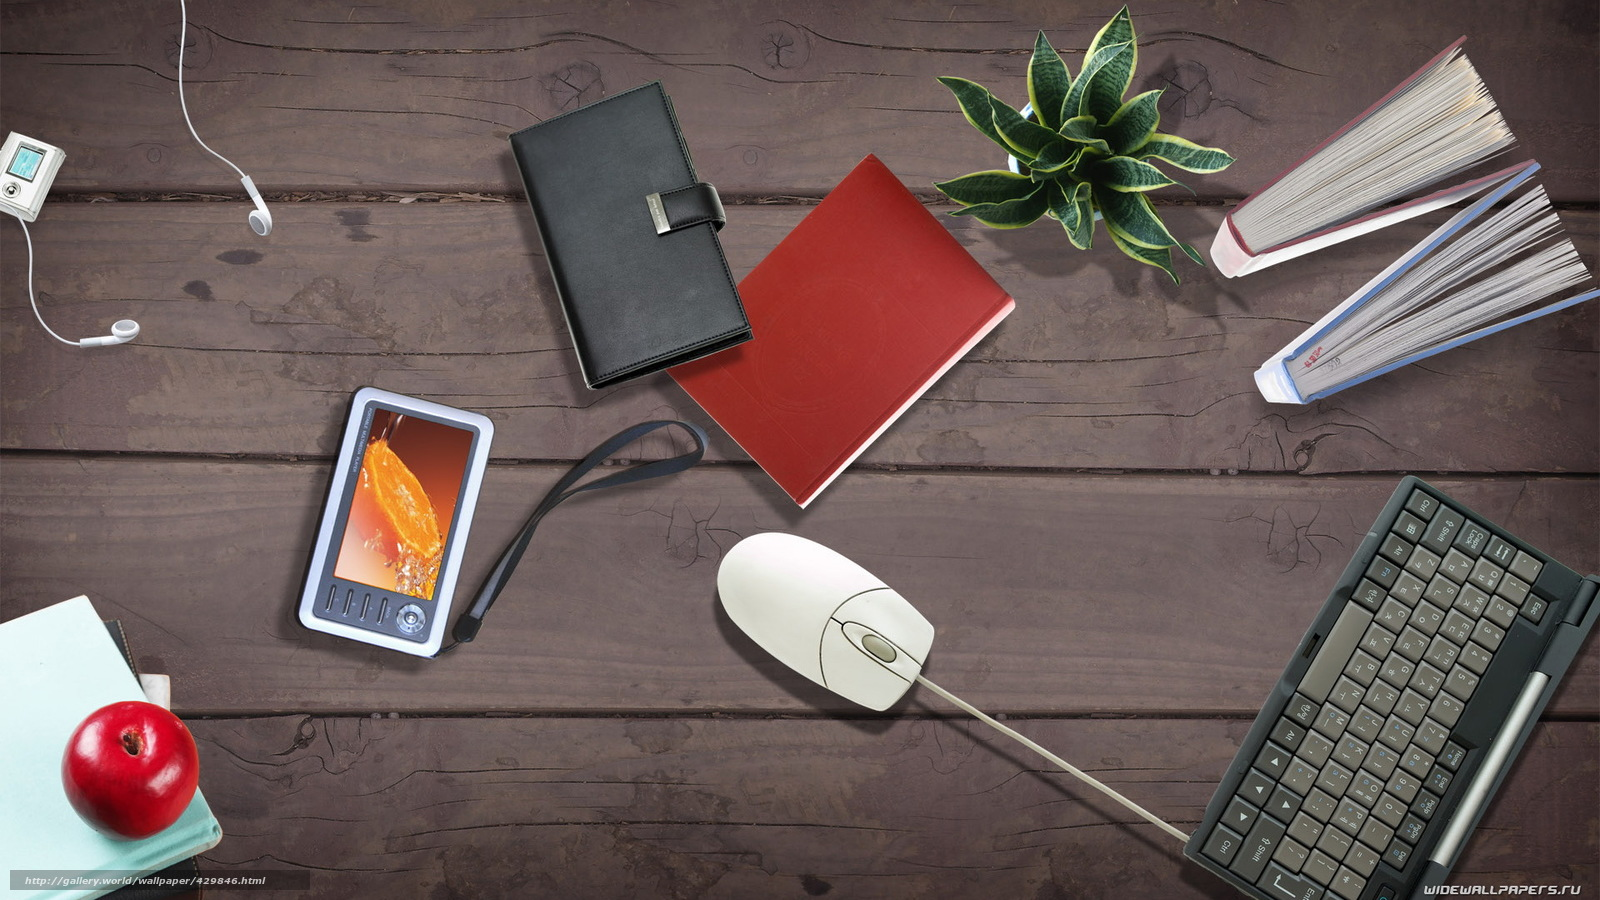 download wallpaper computer mouse office desk flower